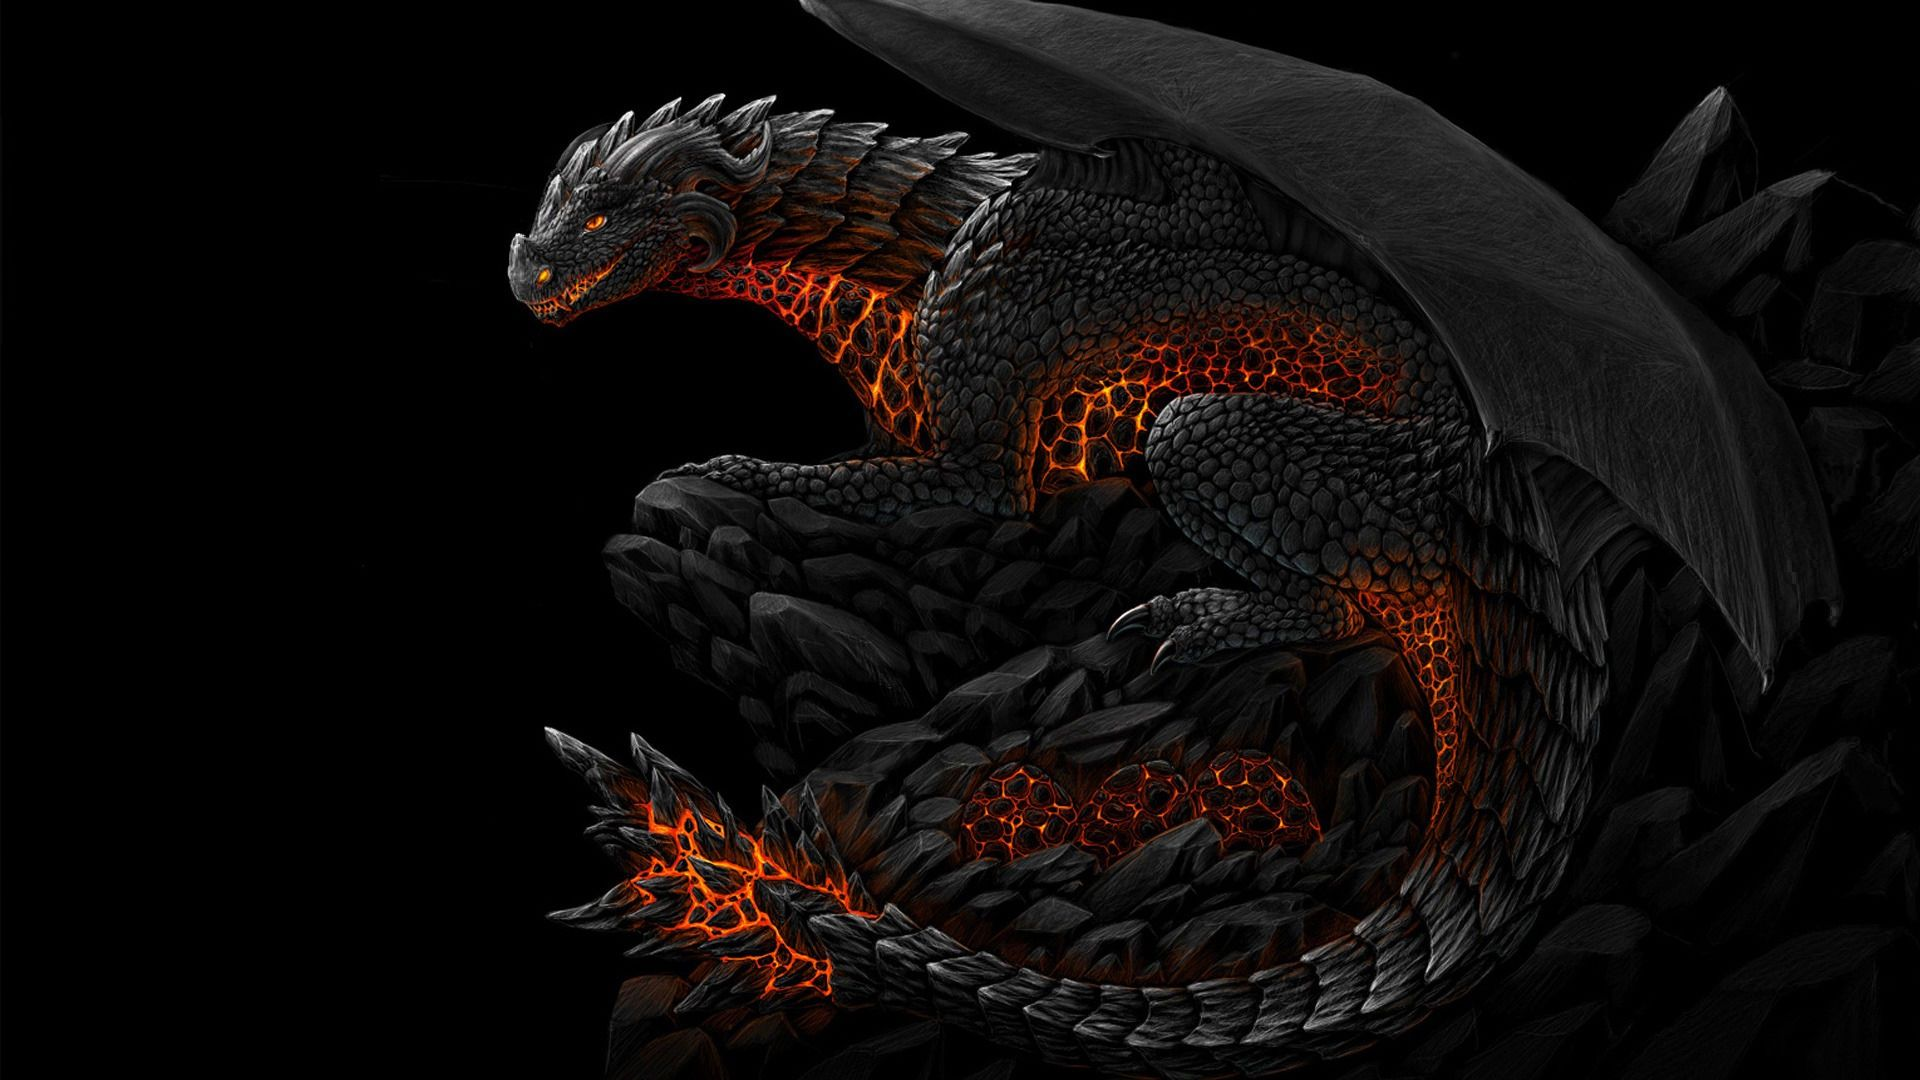 Sillhouette Black Dragon Wallpapers Top Free Sillhouette